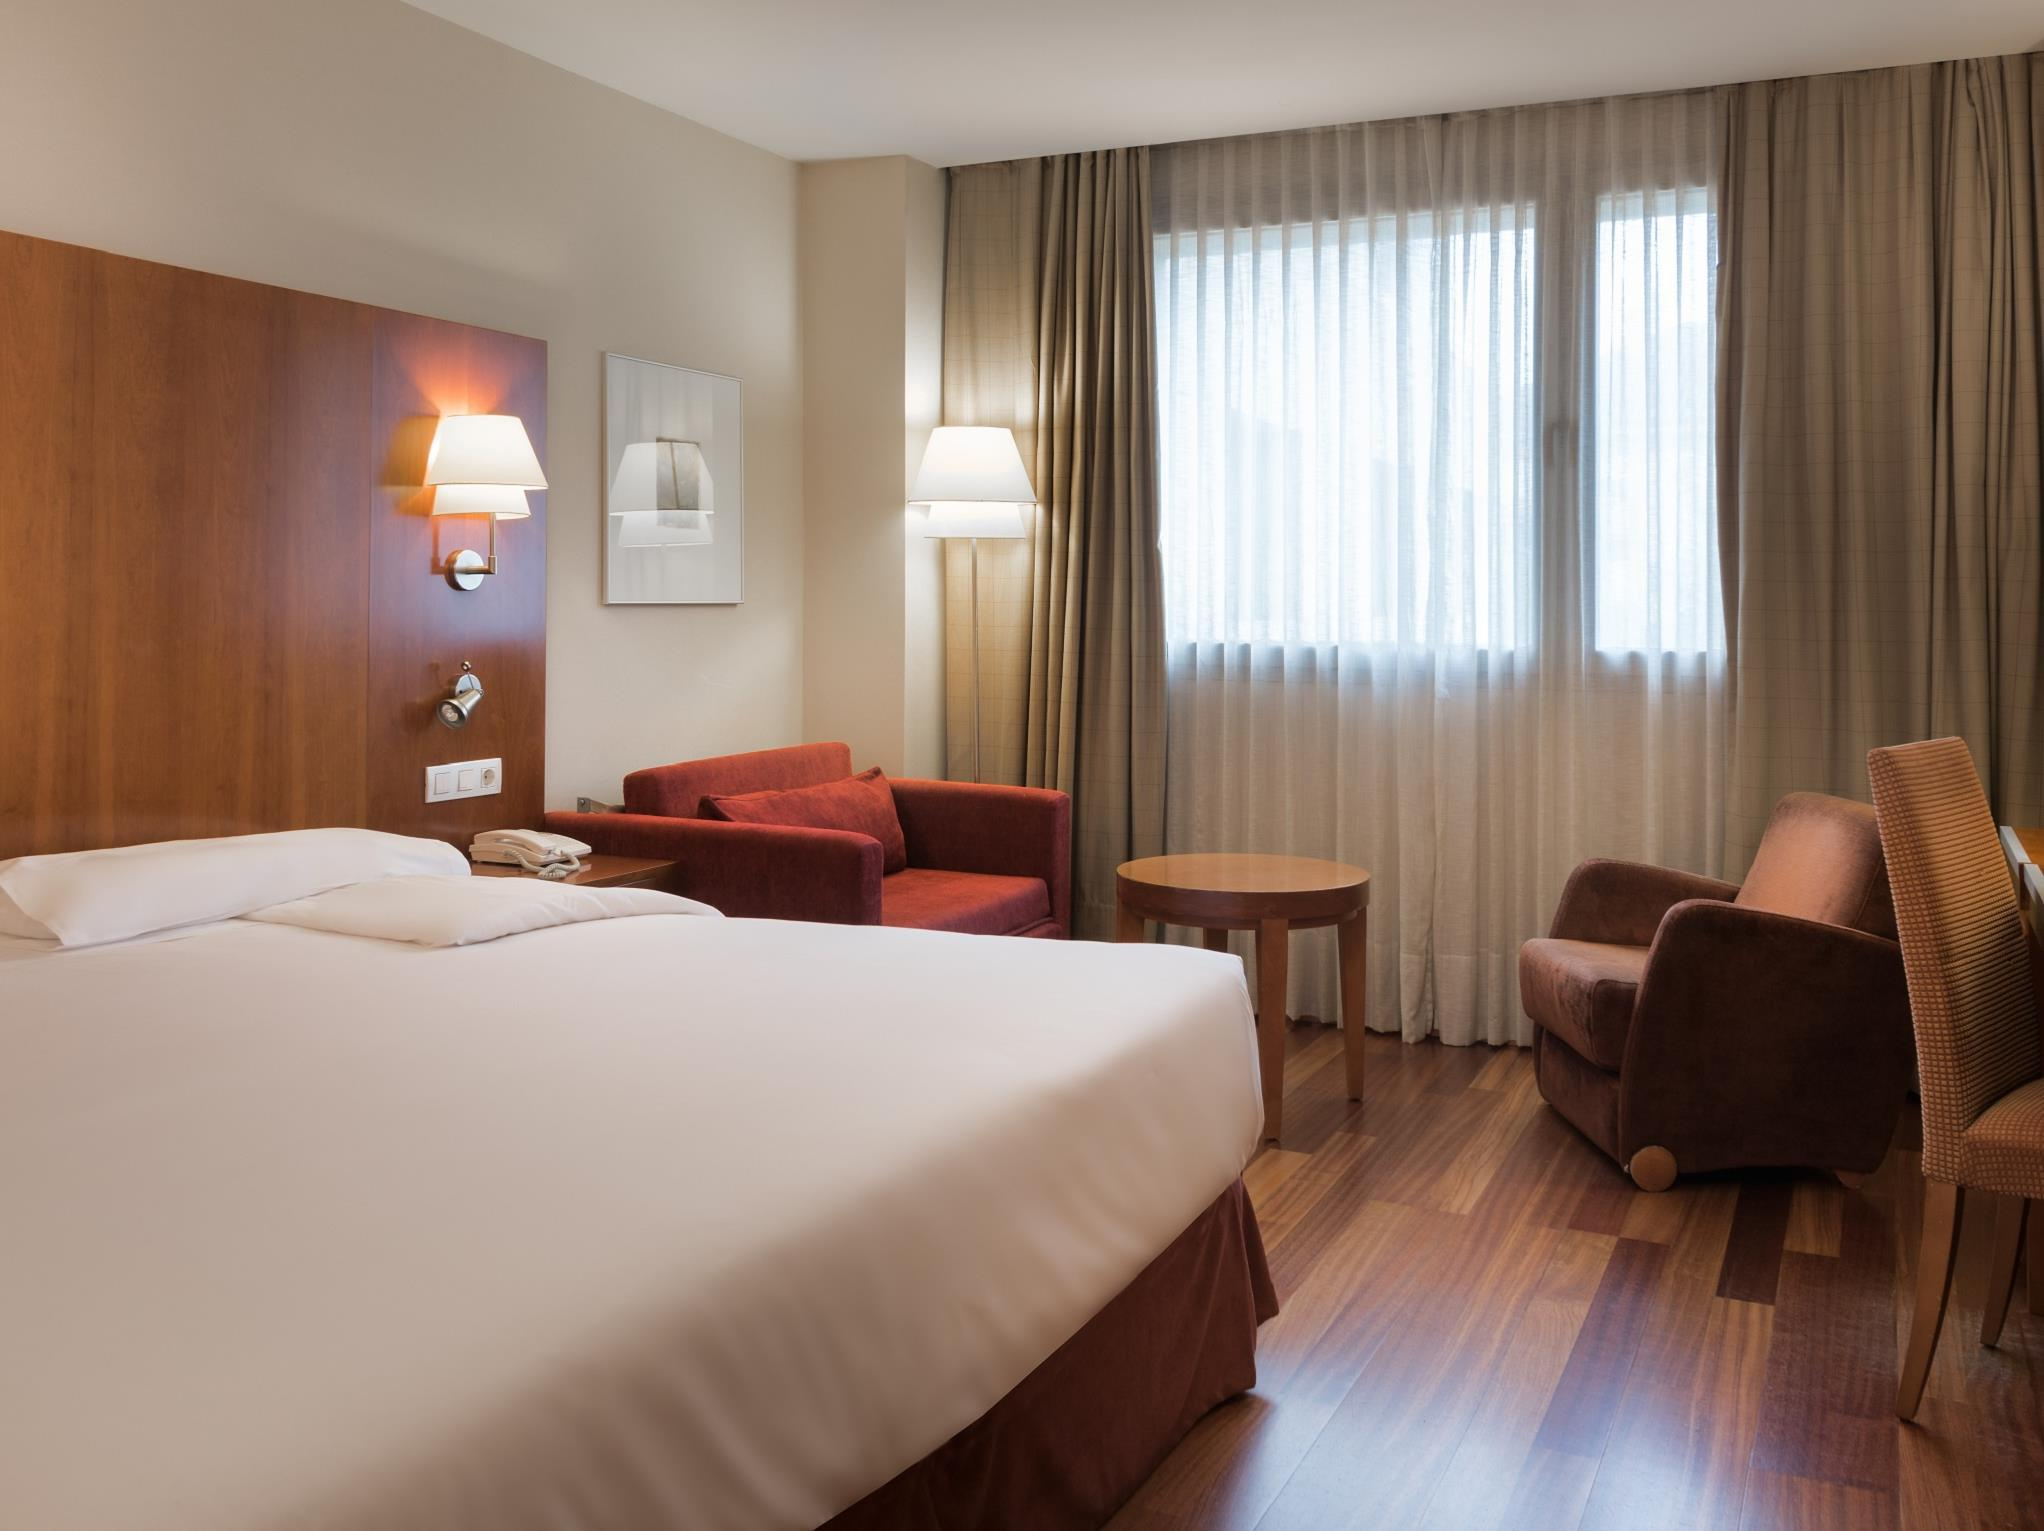 Double Room Single Occupancy Antiox Promo: Free cancellation up to 18h on day of arrival. Cancellati